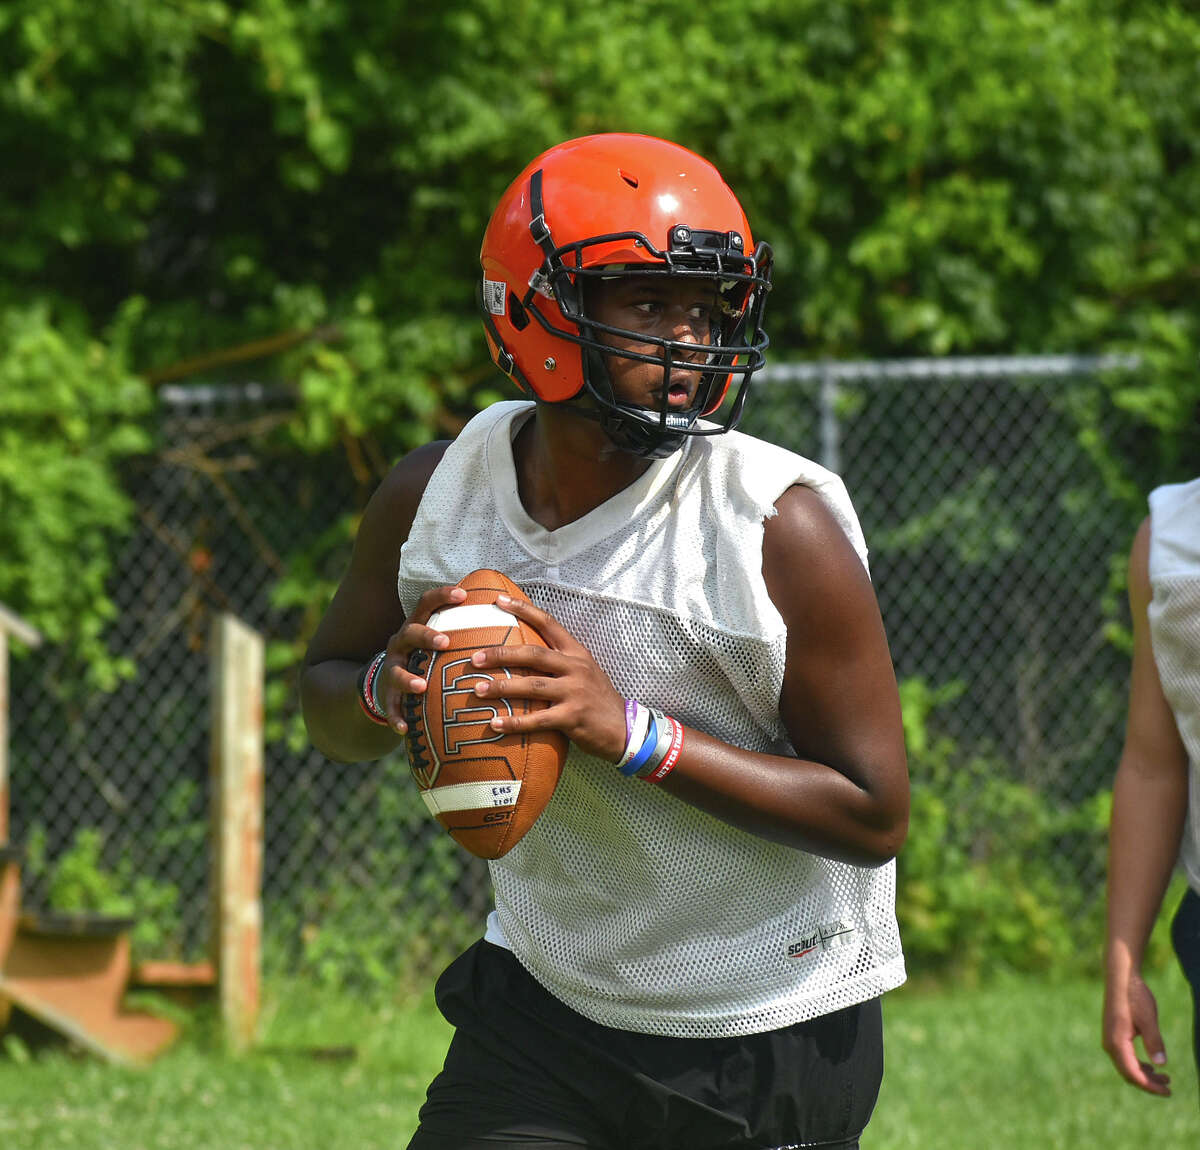 The Edwardsville football team hit the practice field Thursday in preparation of the upcoming season. The Tigers open the 2021 schedule at De Smet on Aug. 27 in St. Louis.